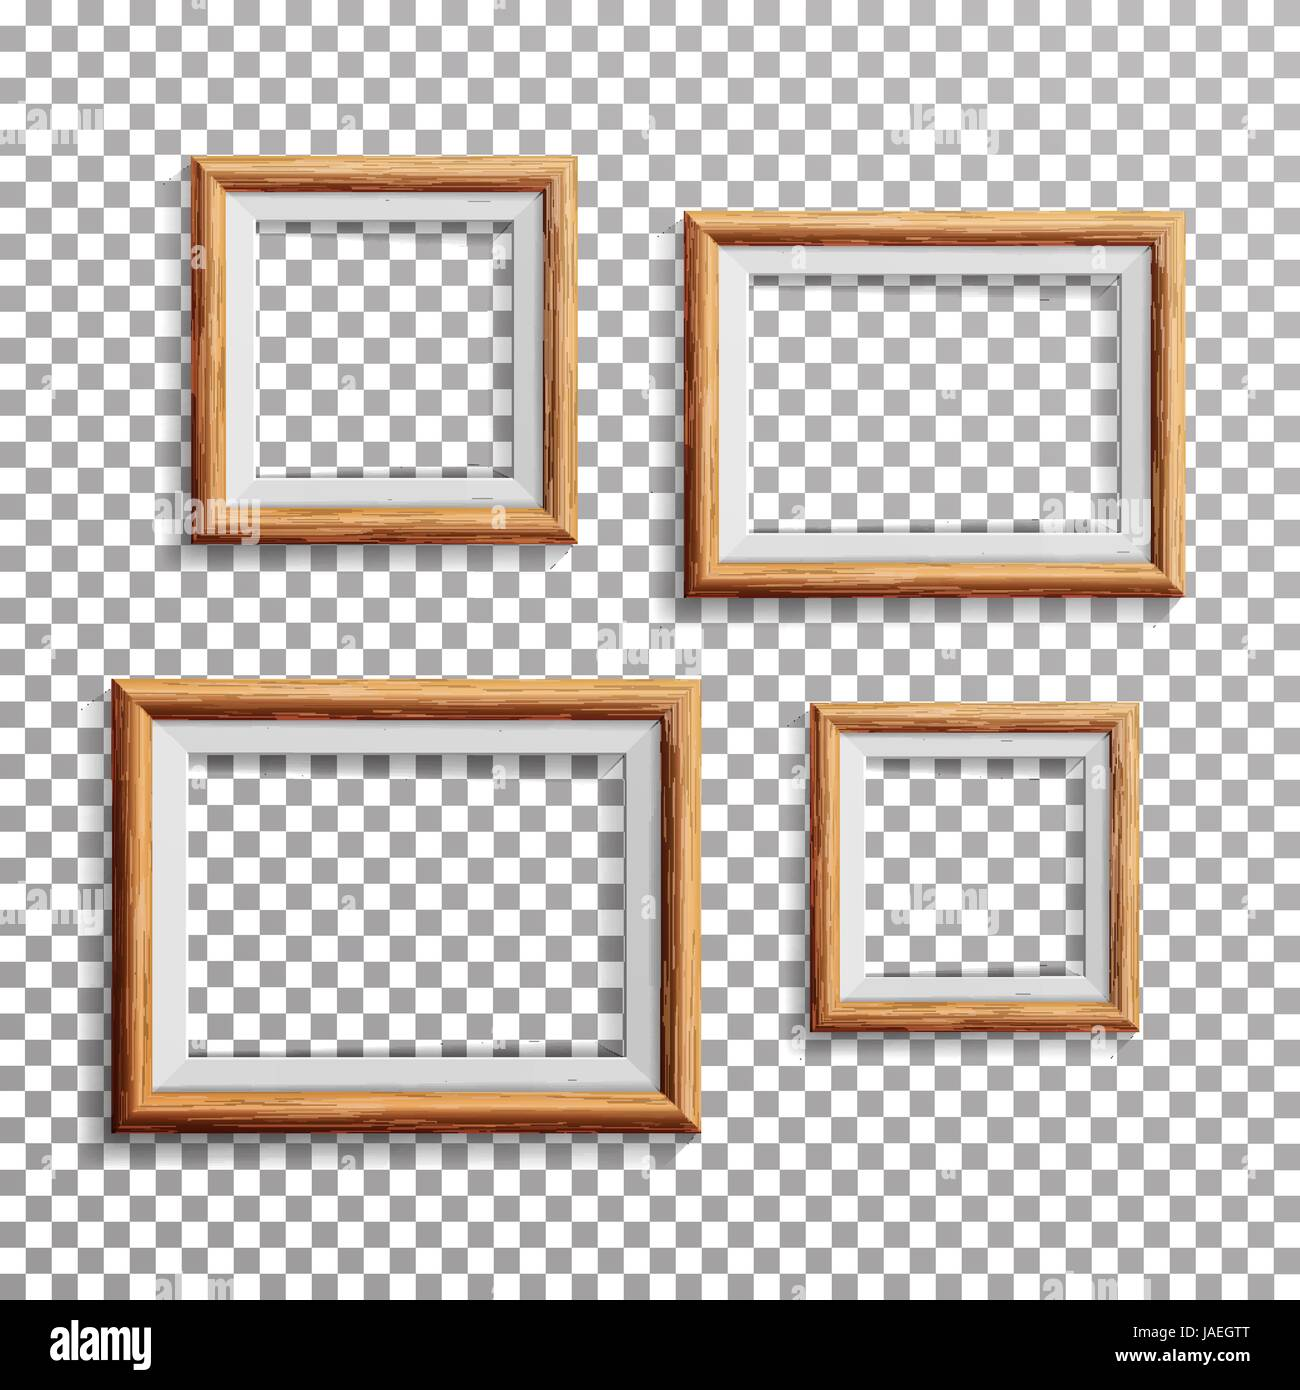 Realistic photo frame vector set square a3 a4 sizes light wood realistic photo frame vector set square a3 a4 sizes light wood blank picture frame hanging on transparent background from the front template for jeuxipadfo Choice Image